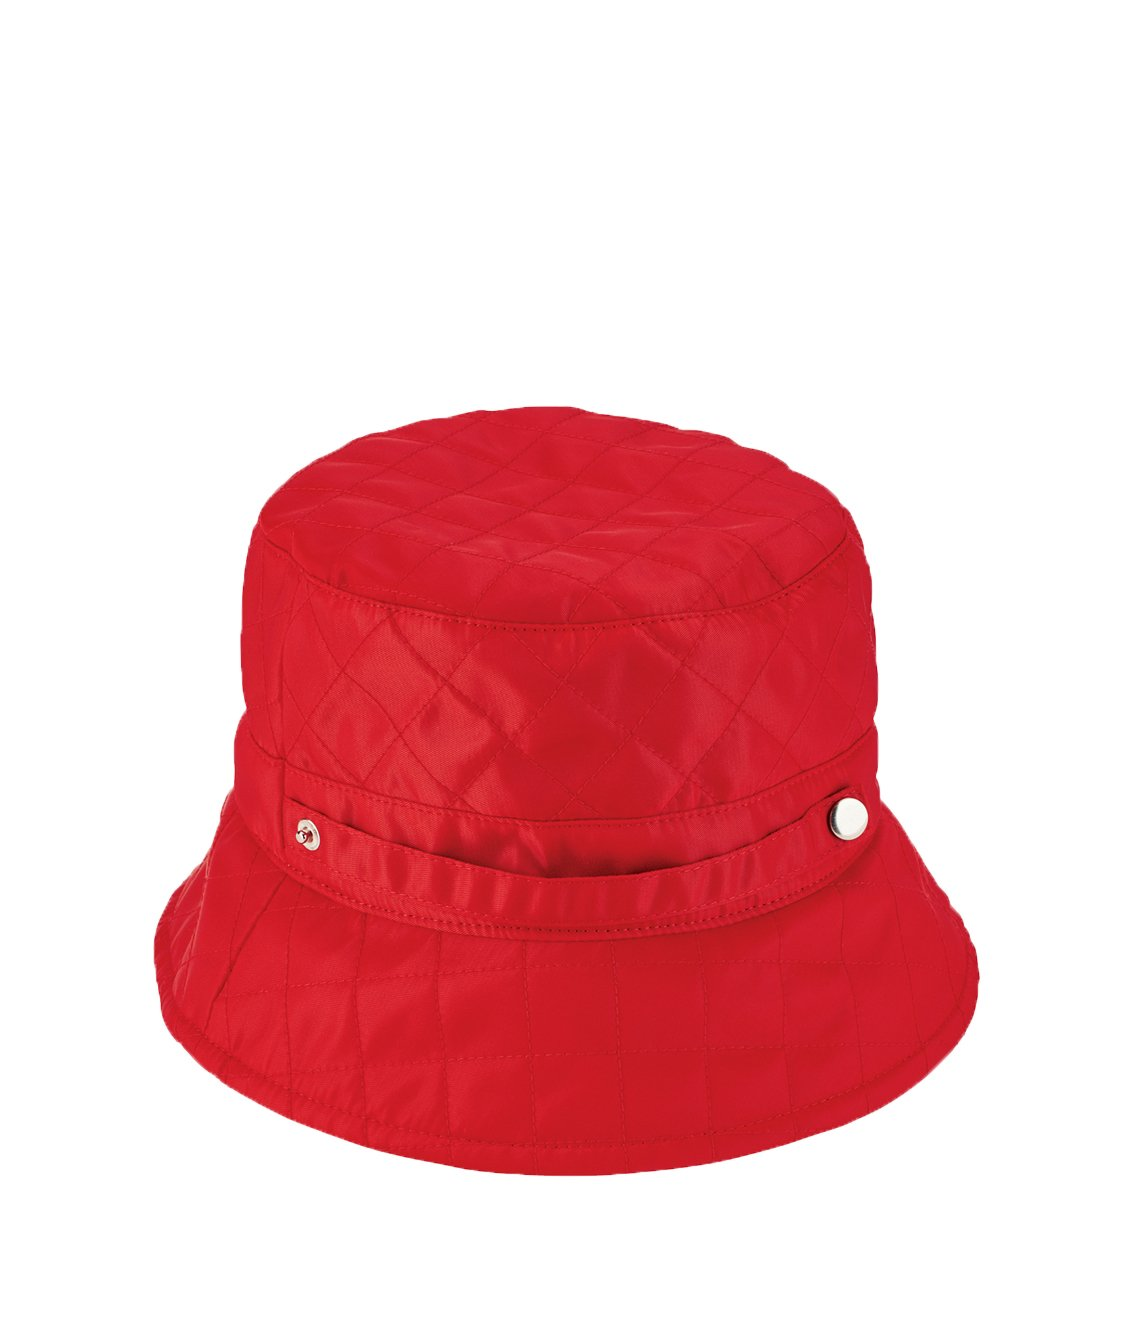 San Diego Hat Company Women's Quilted Rain Hat, Red, OS by San Diego Hat Company